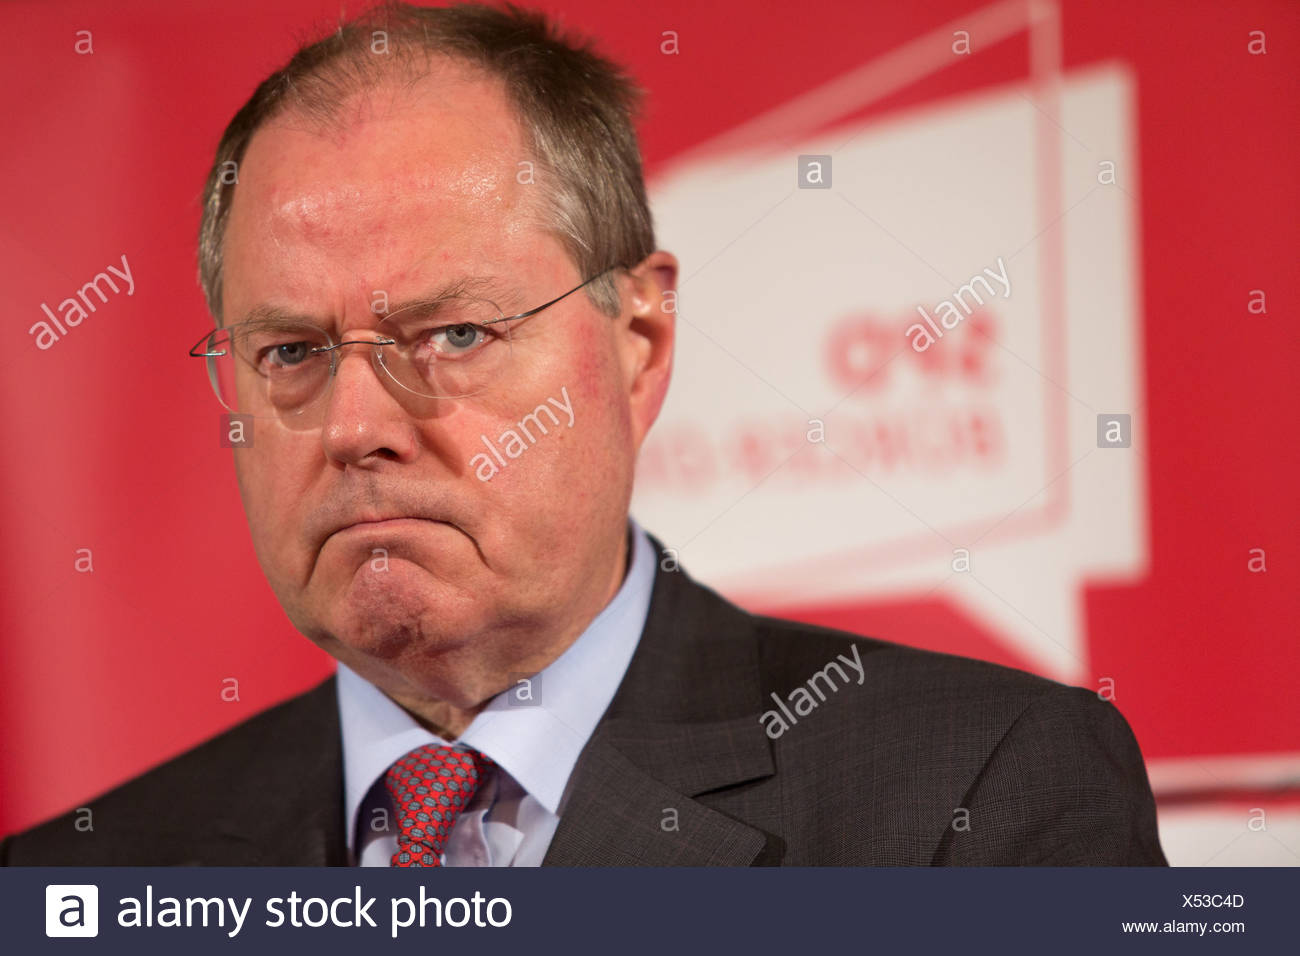 Luebeck, Germany, SPD mayor dialogue with Peer Steinbrueck - Stock Image